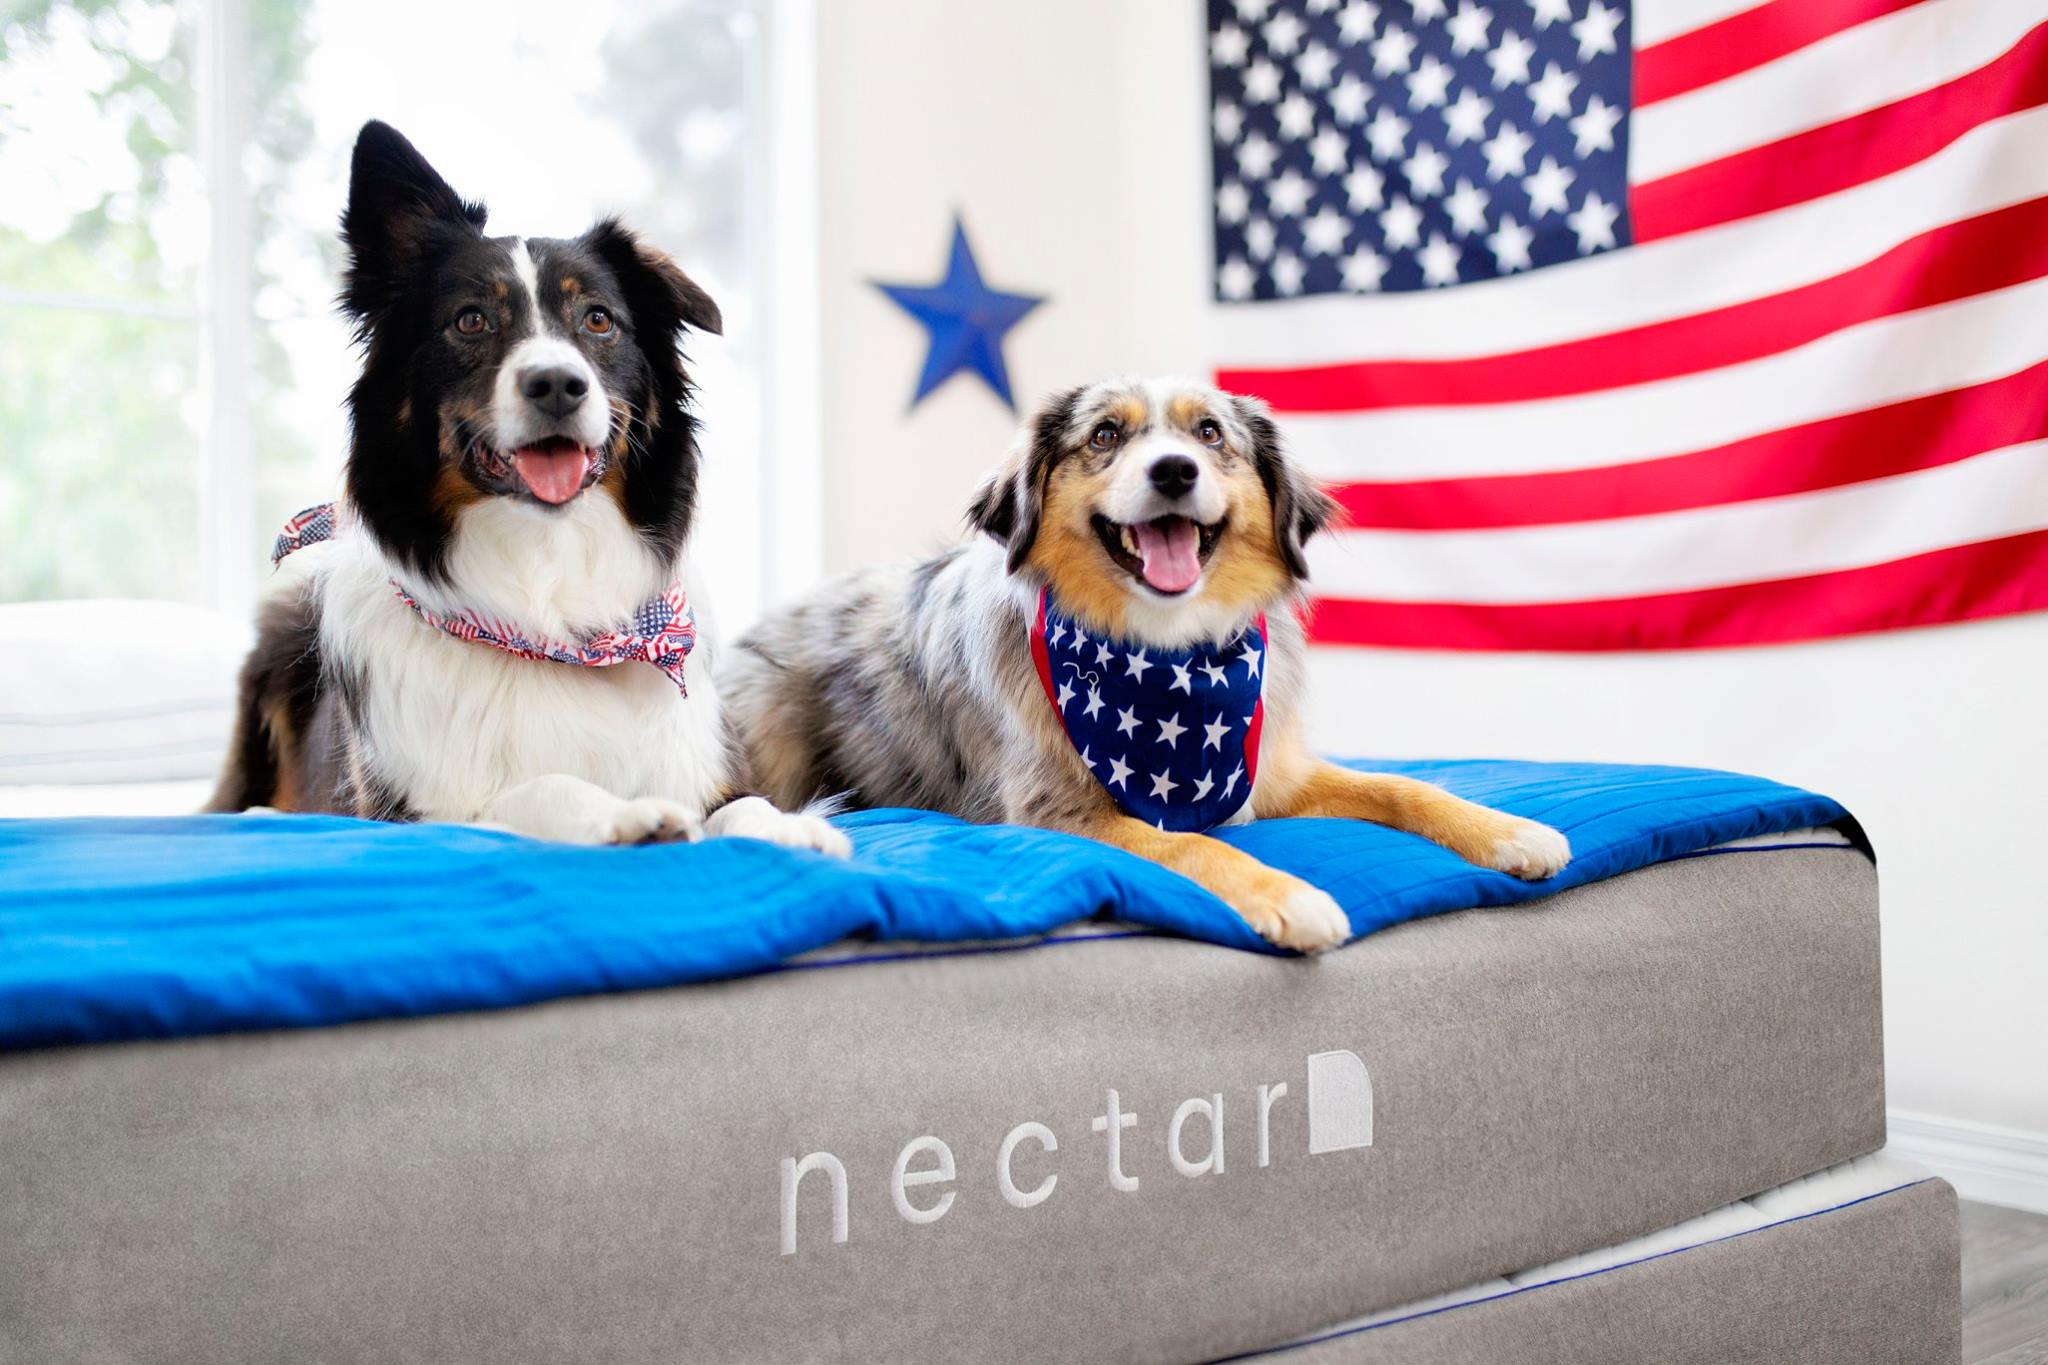 The Nectar mattress, animals, health, home